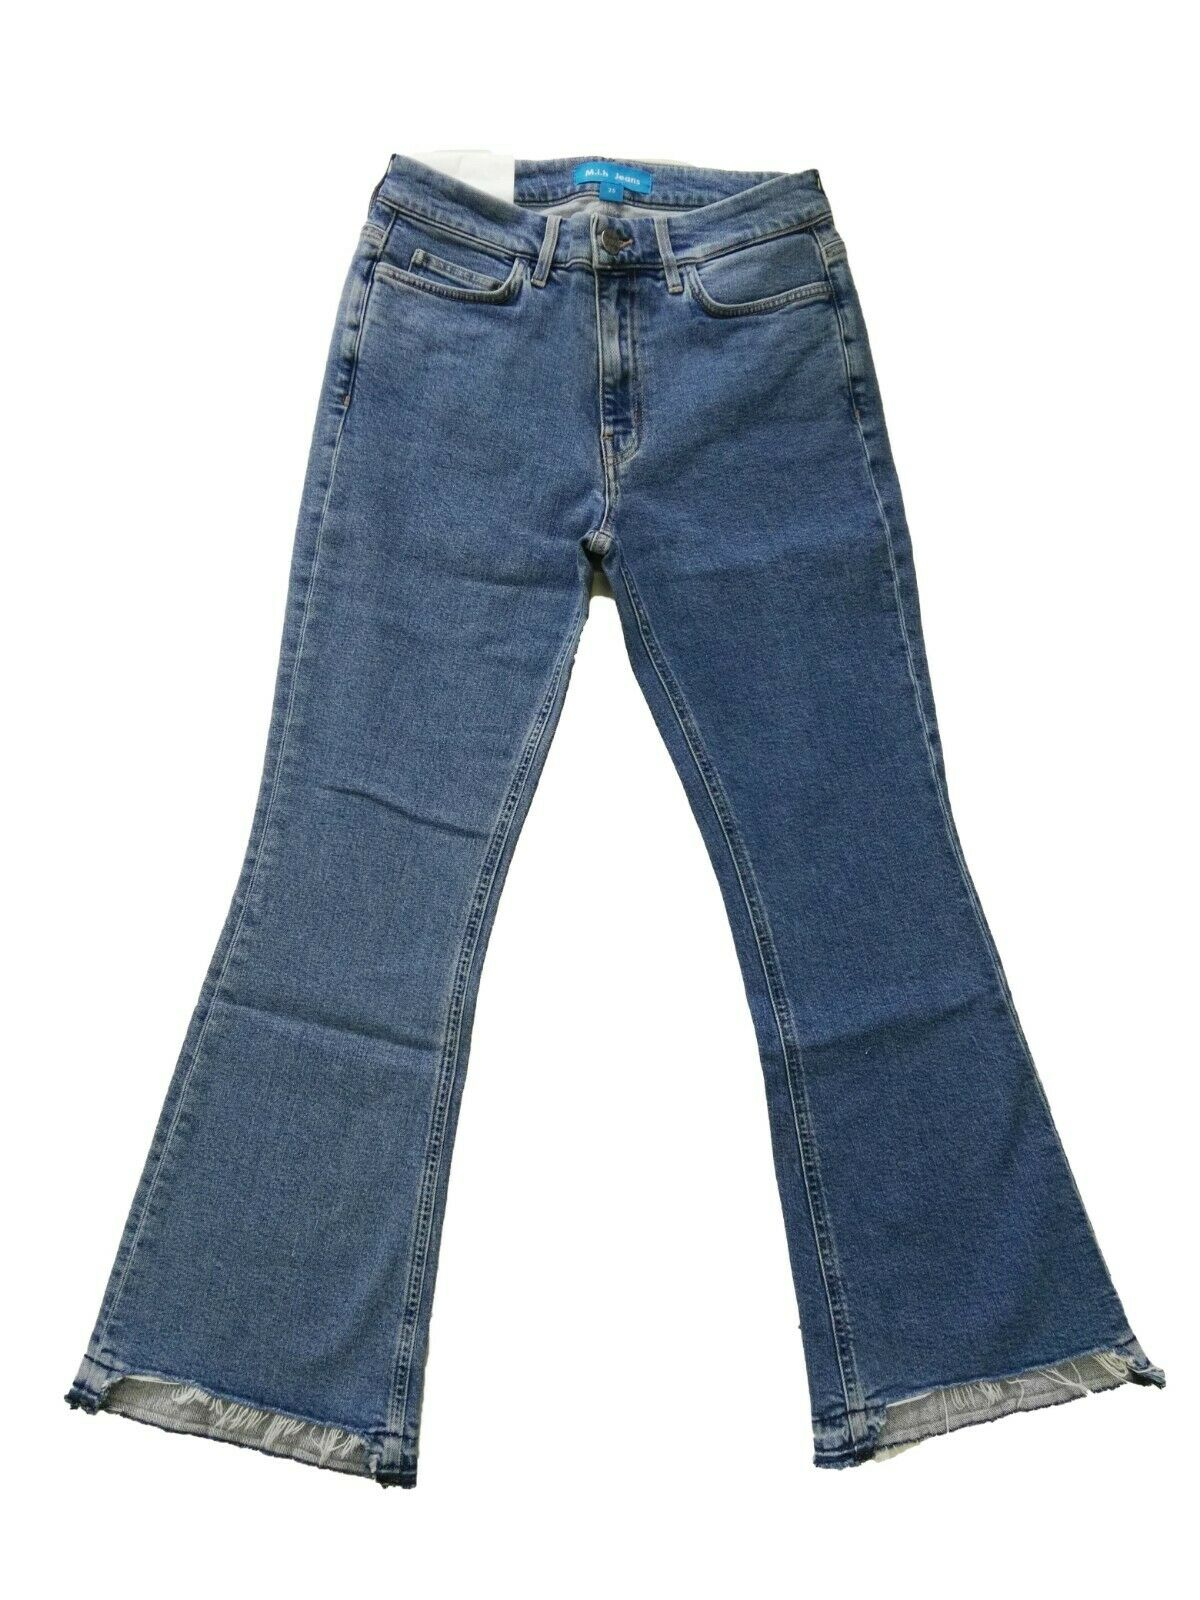 M.I.H Jeans Marty Jean Size 25 - New with defect